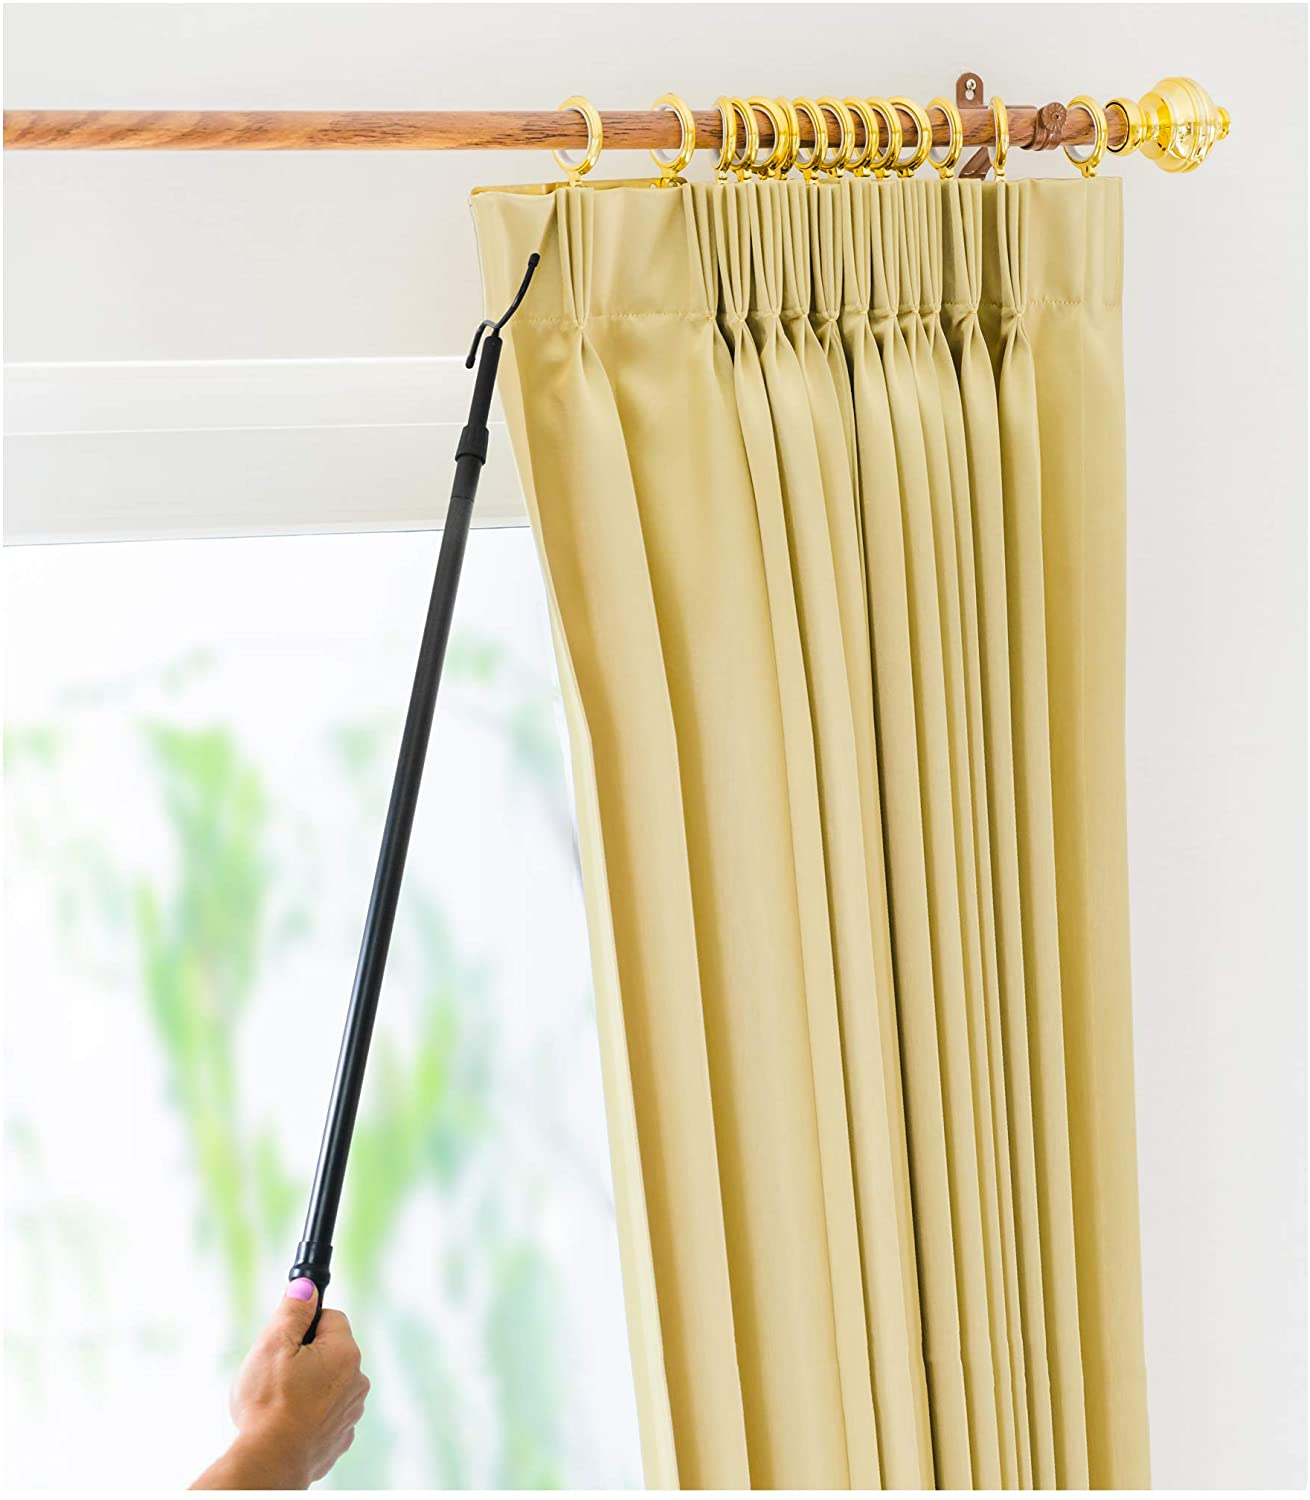 Drapery Pull Rod - the Original 36-62 Universal Telescoping Drapery Pull Rod and Adjustable Curtain Wand for Easier Opening and Back Doubles as a Clothes Hook Hanger for Closet Storage Organization